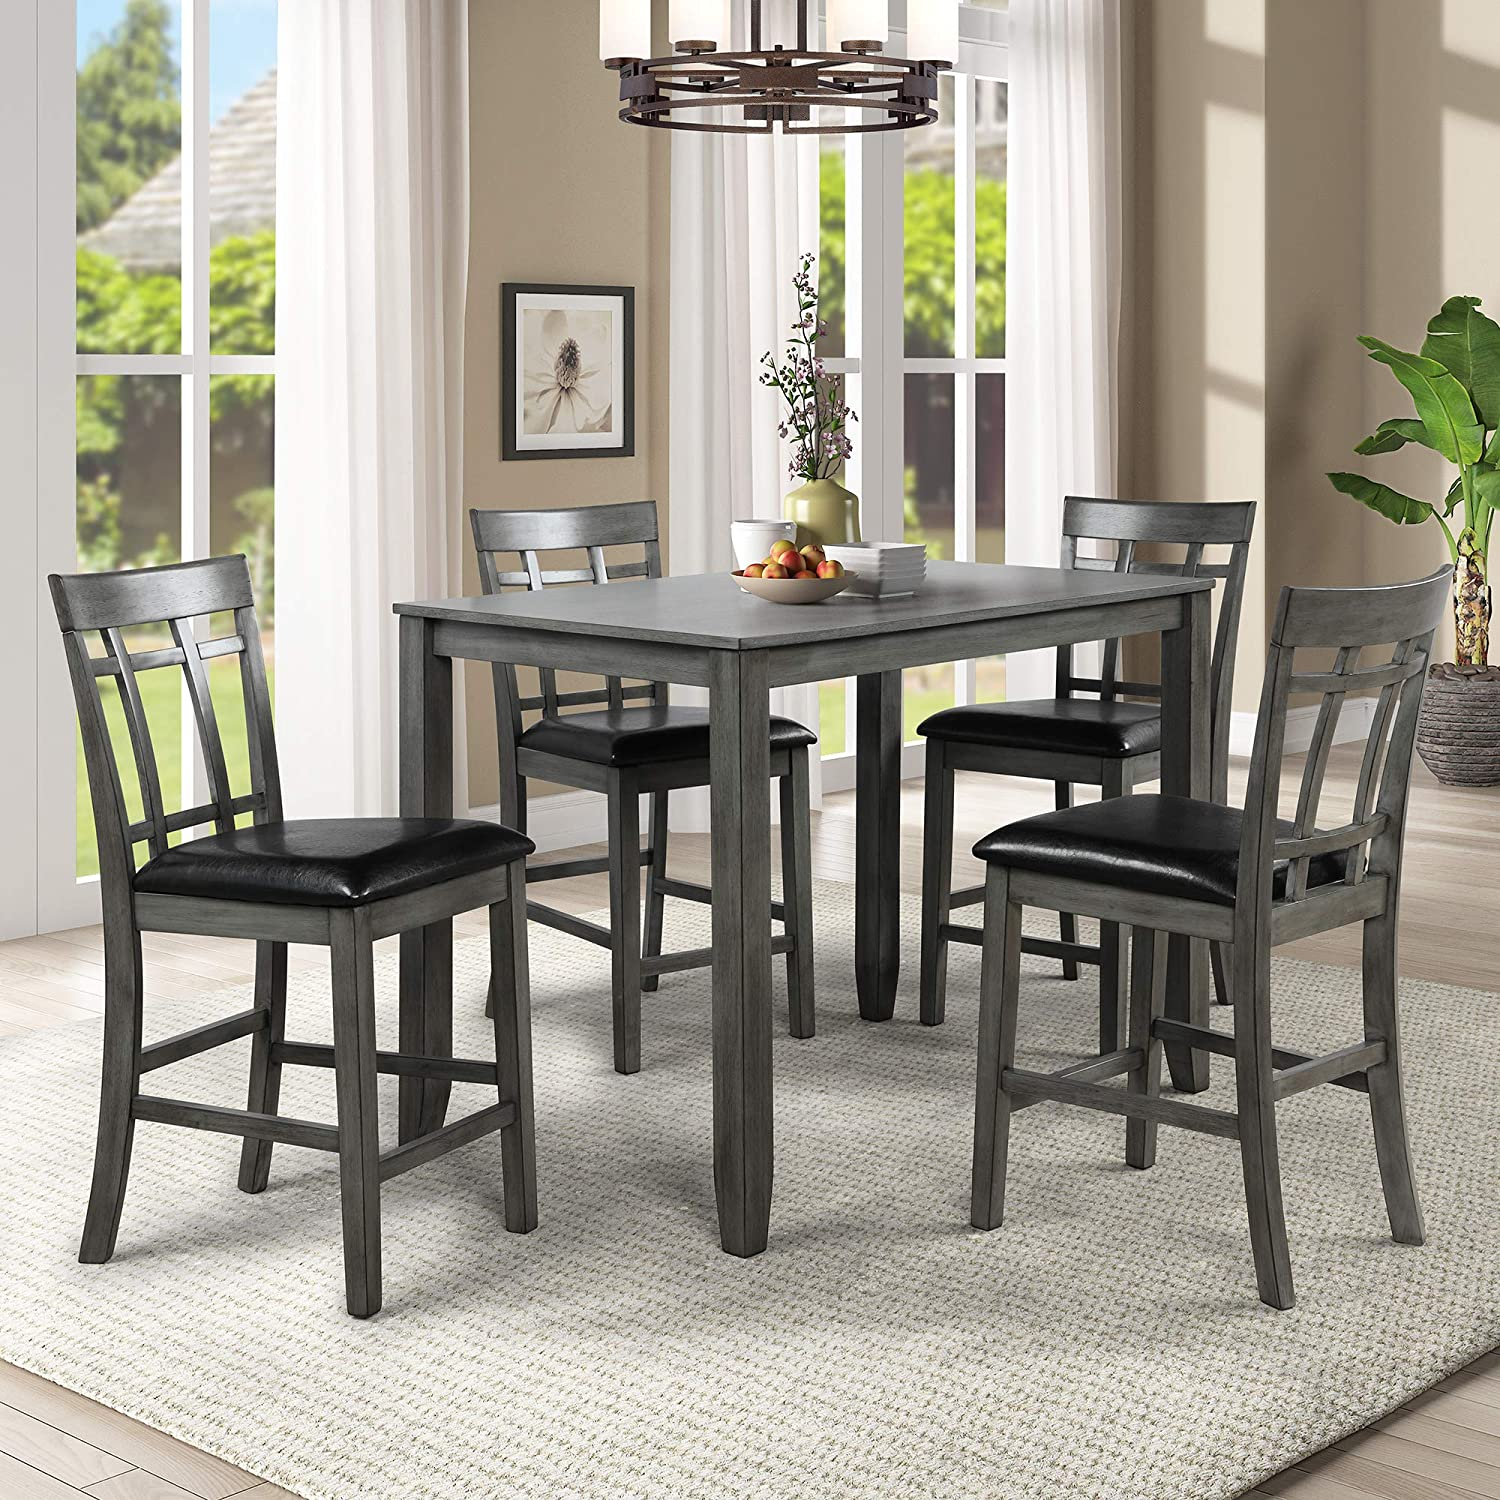 Amazon Com Harper Bright Designs 5 Piece Wood Dining Table Set Vintage Rectangular Counter Height Bar Table With 4 Chairs For Dining Room Pub And Bistro Antique Graywash Table Chair Sets